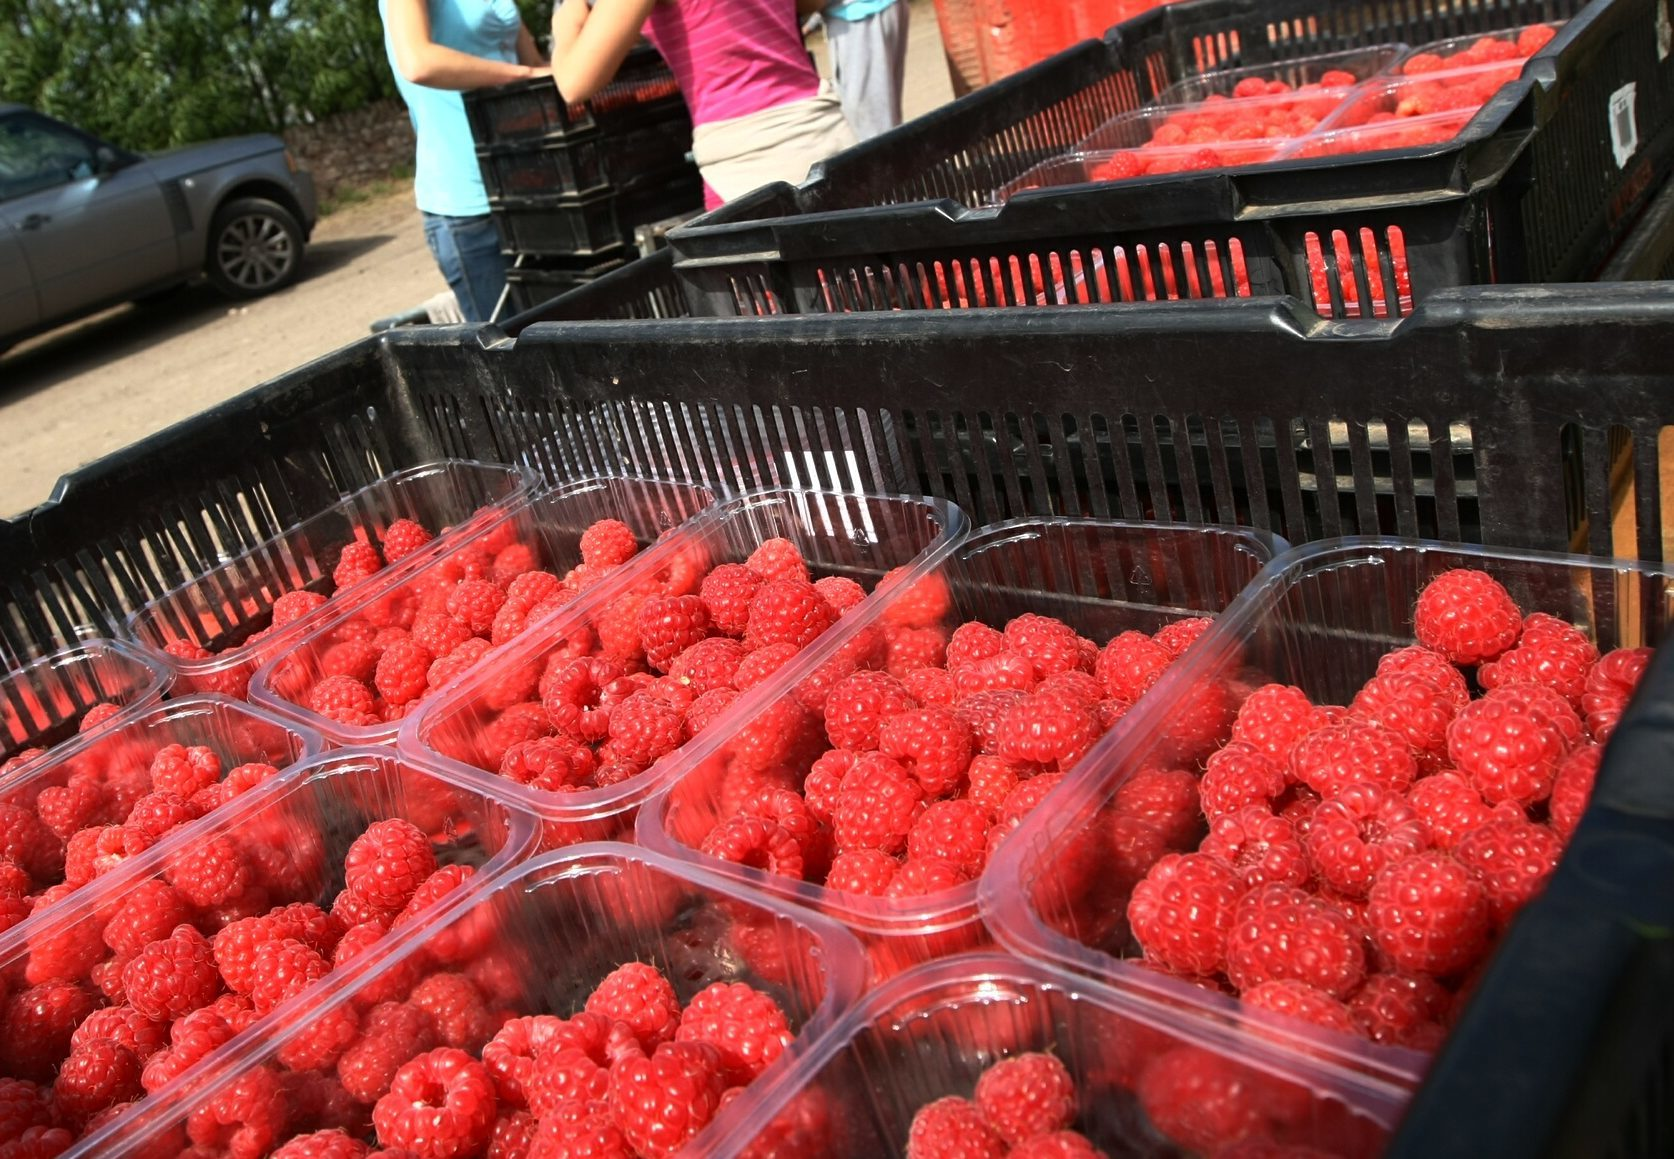 Raspberries picked in Angus, which are bound for British supermarkets.